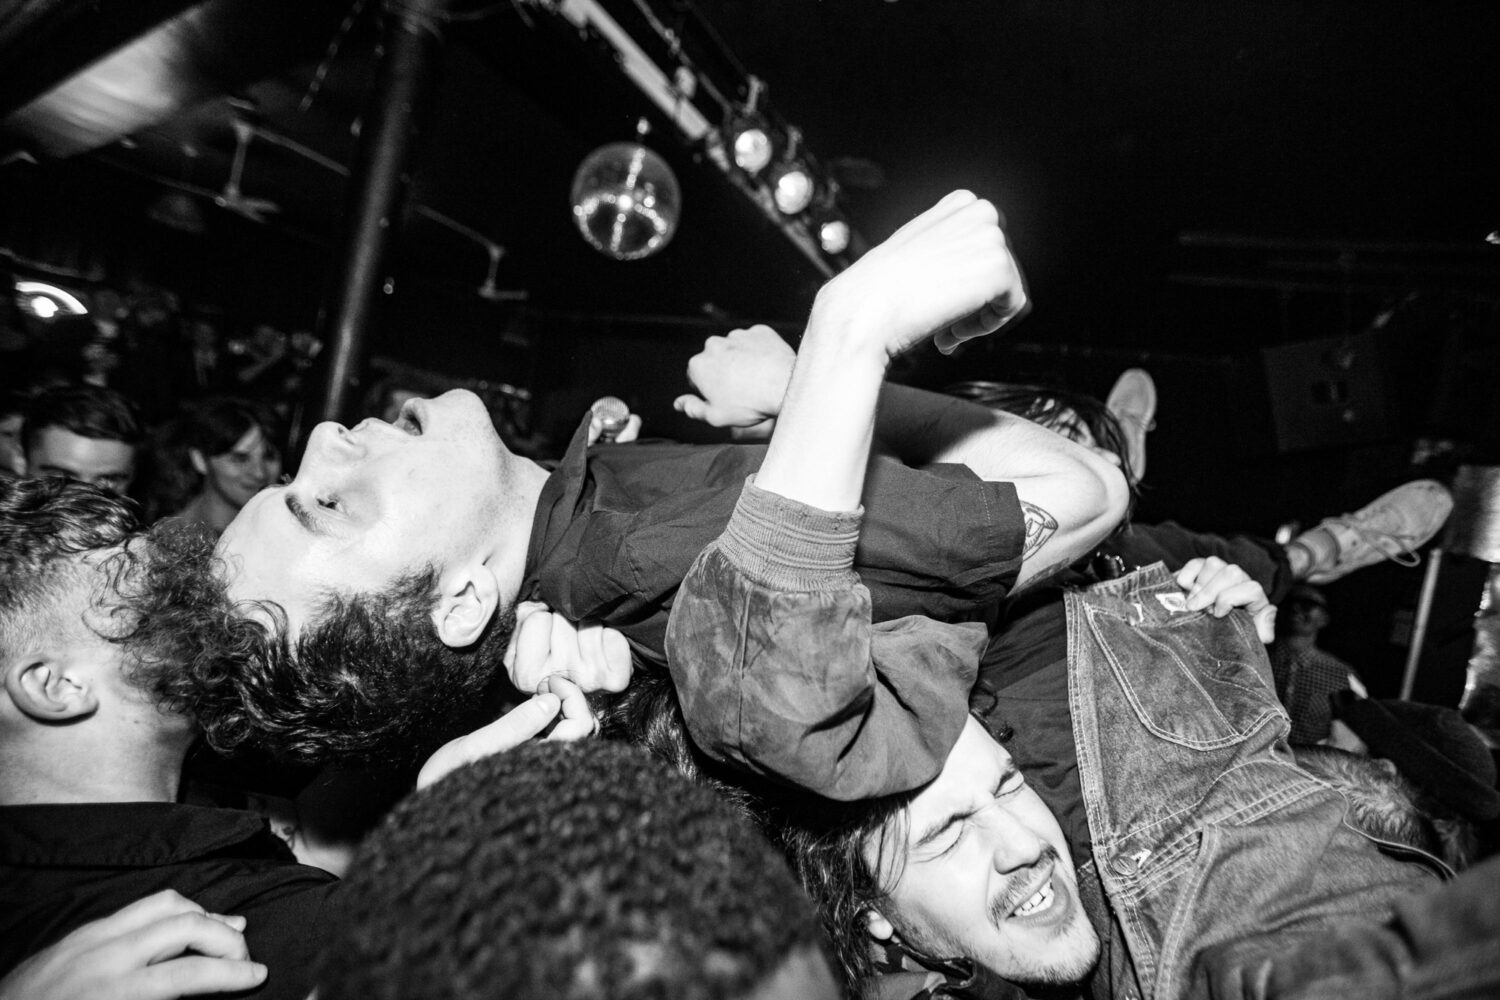 Crowdsurfers, mosh pits and general carnage are the order of the day at Yowl's celebratory Jäger Curtain Call headline show